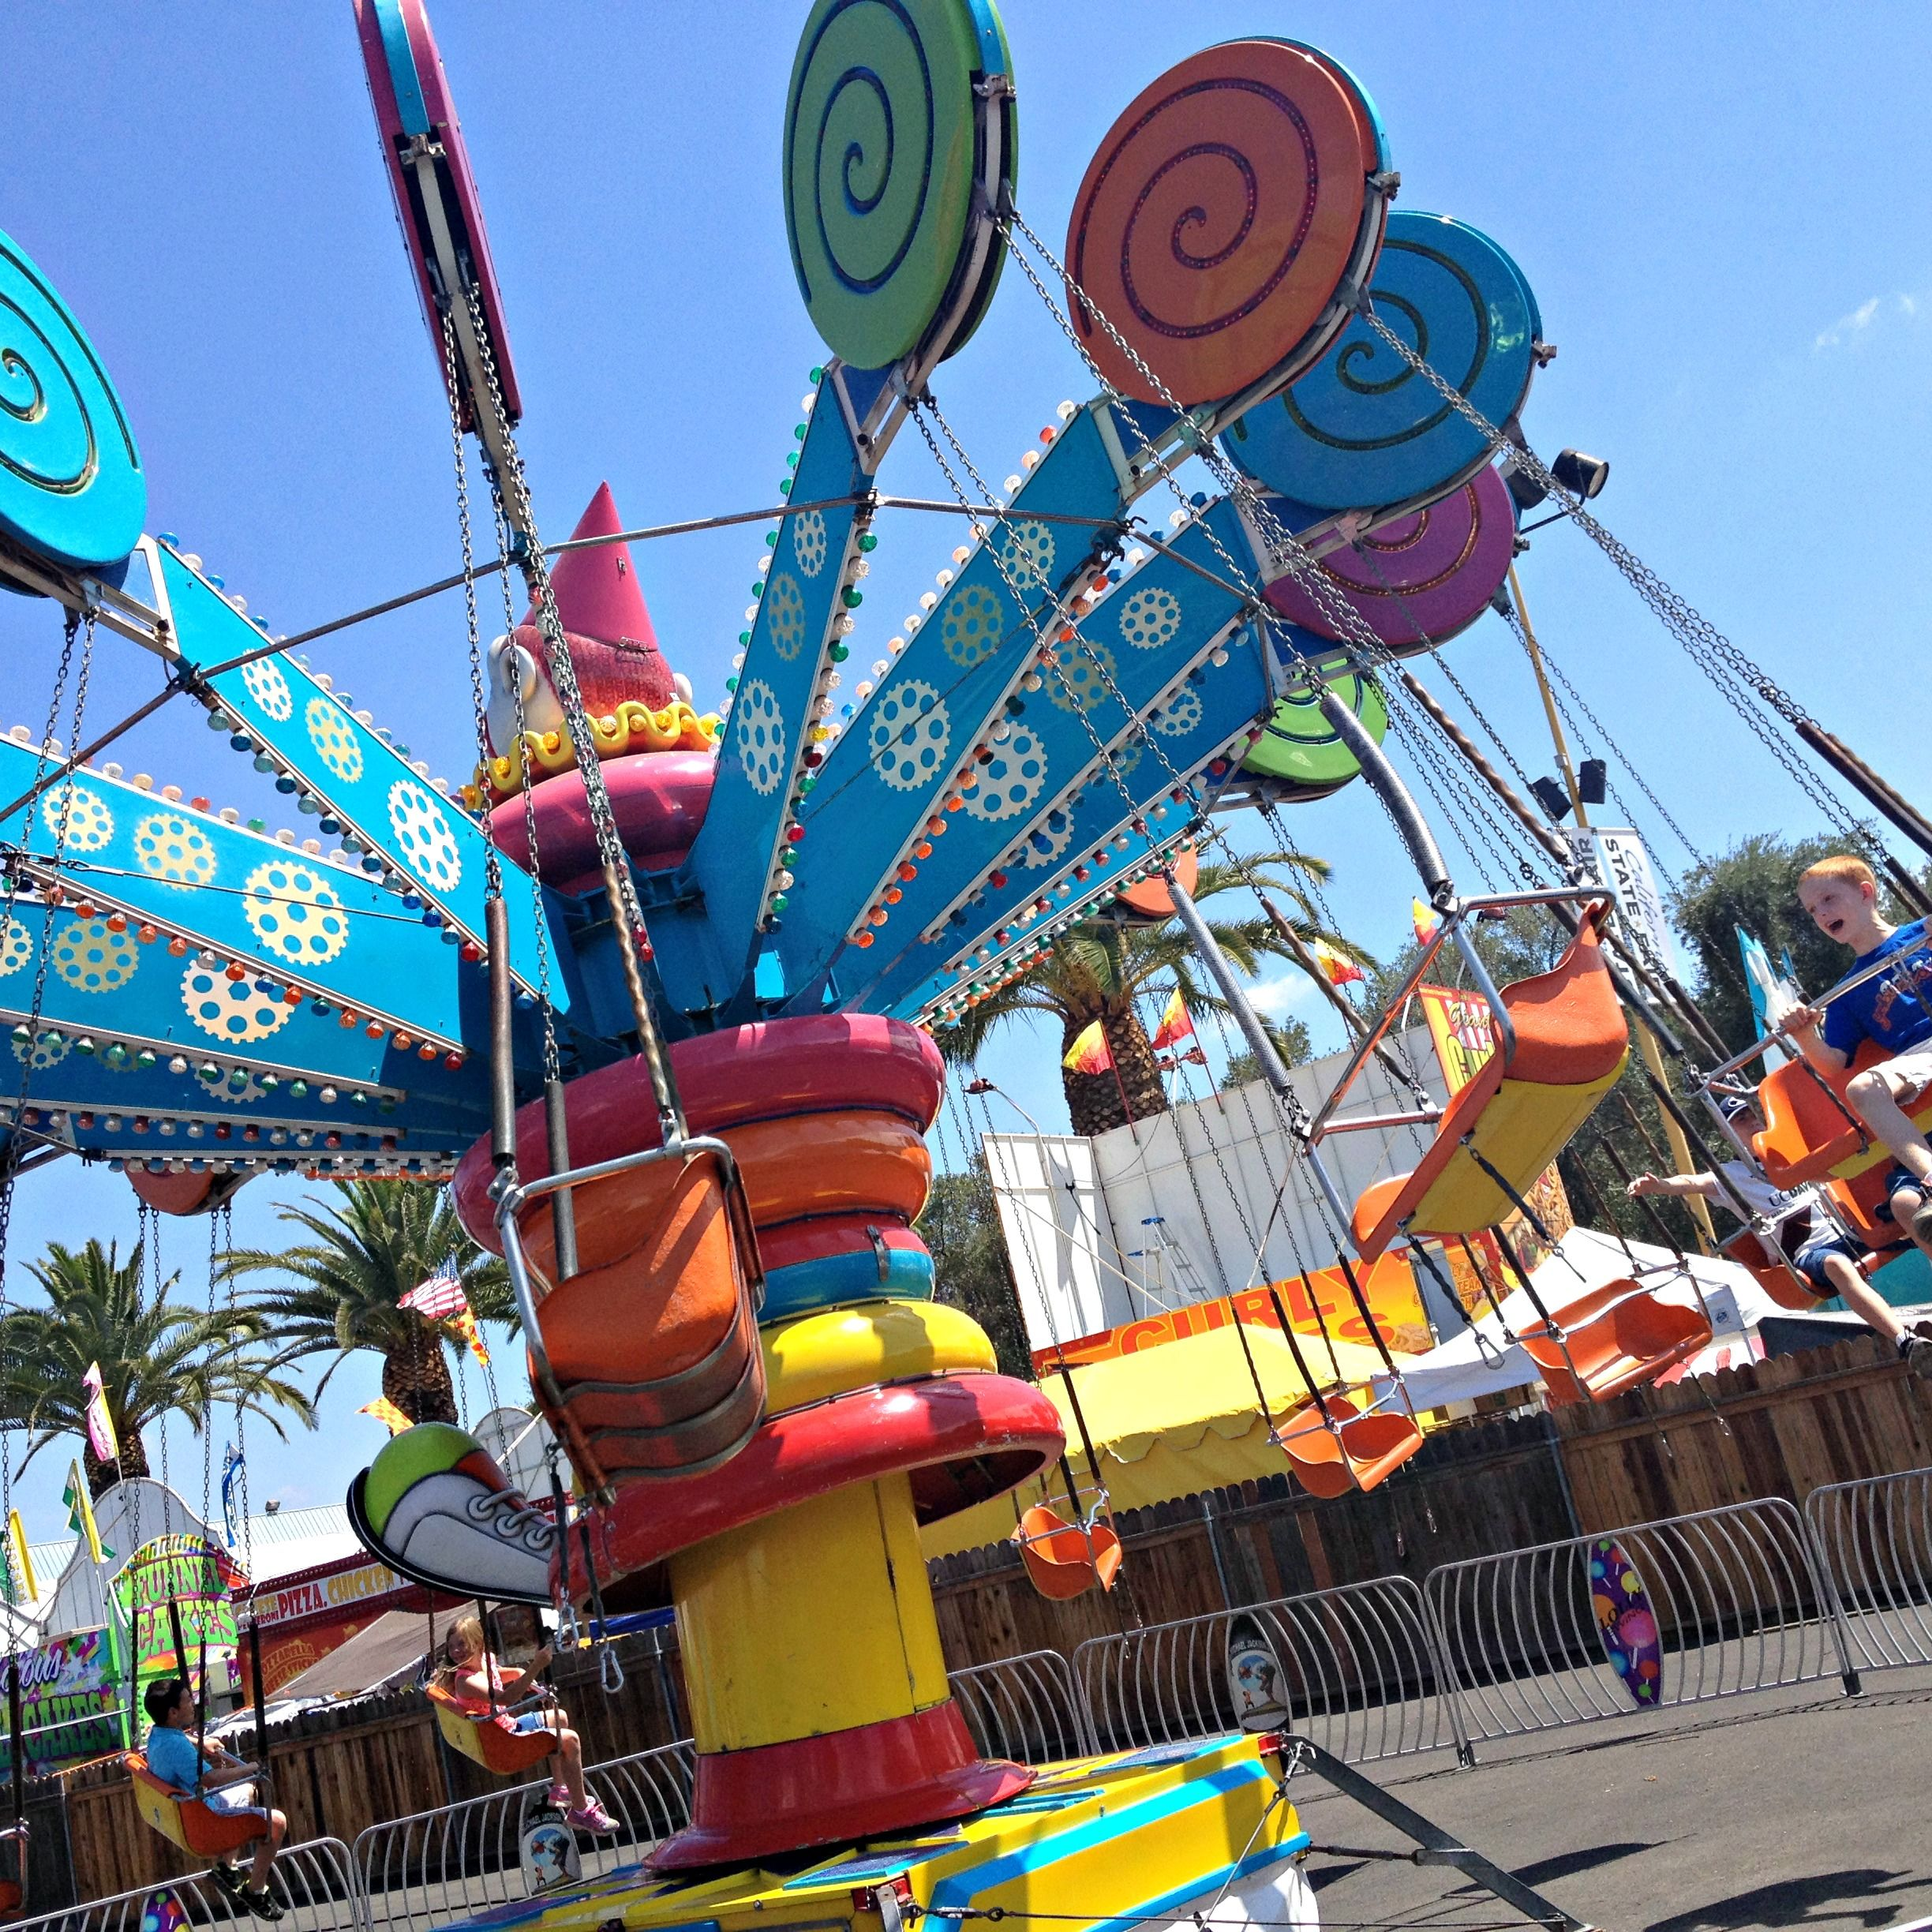 The Best Things To Do With Kids At The California State Fair In